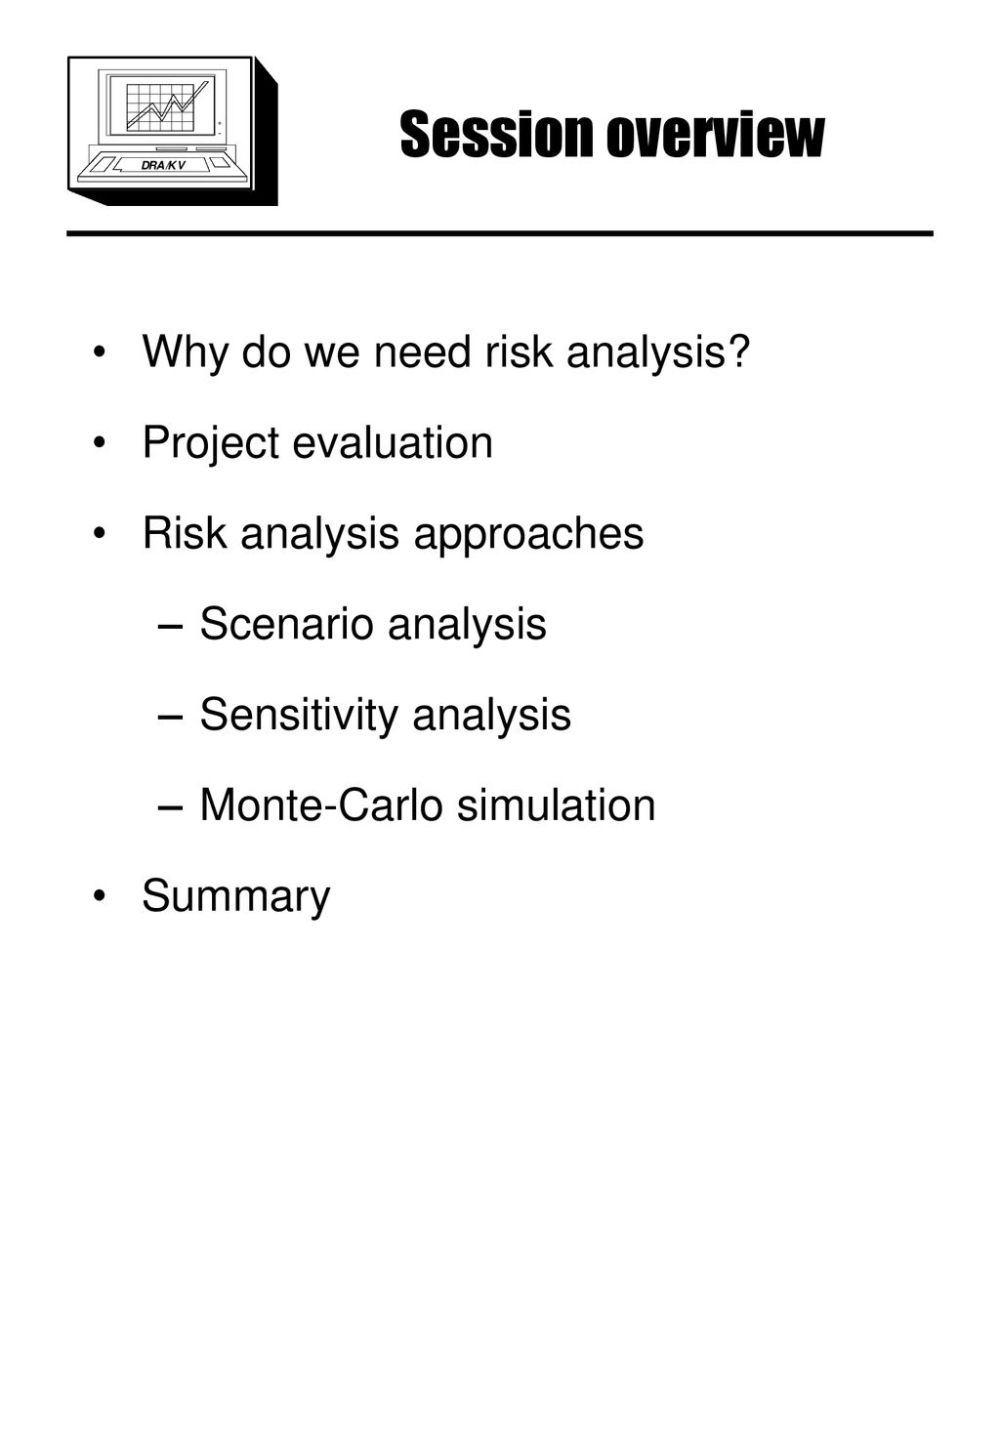 medium resolution of session overview why do we need risk analysis project evaluation